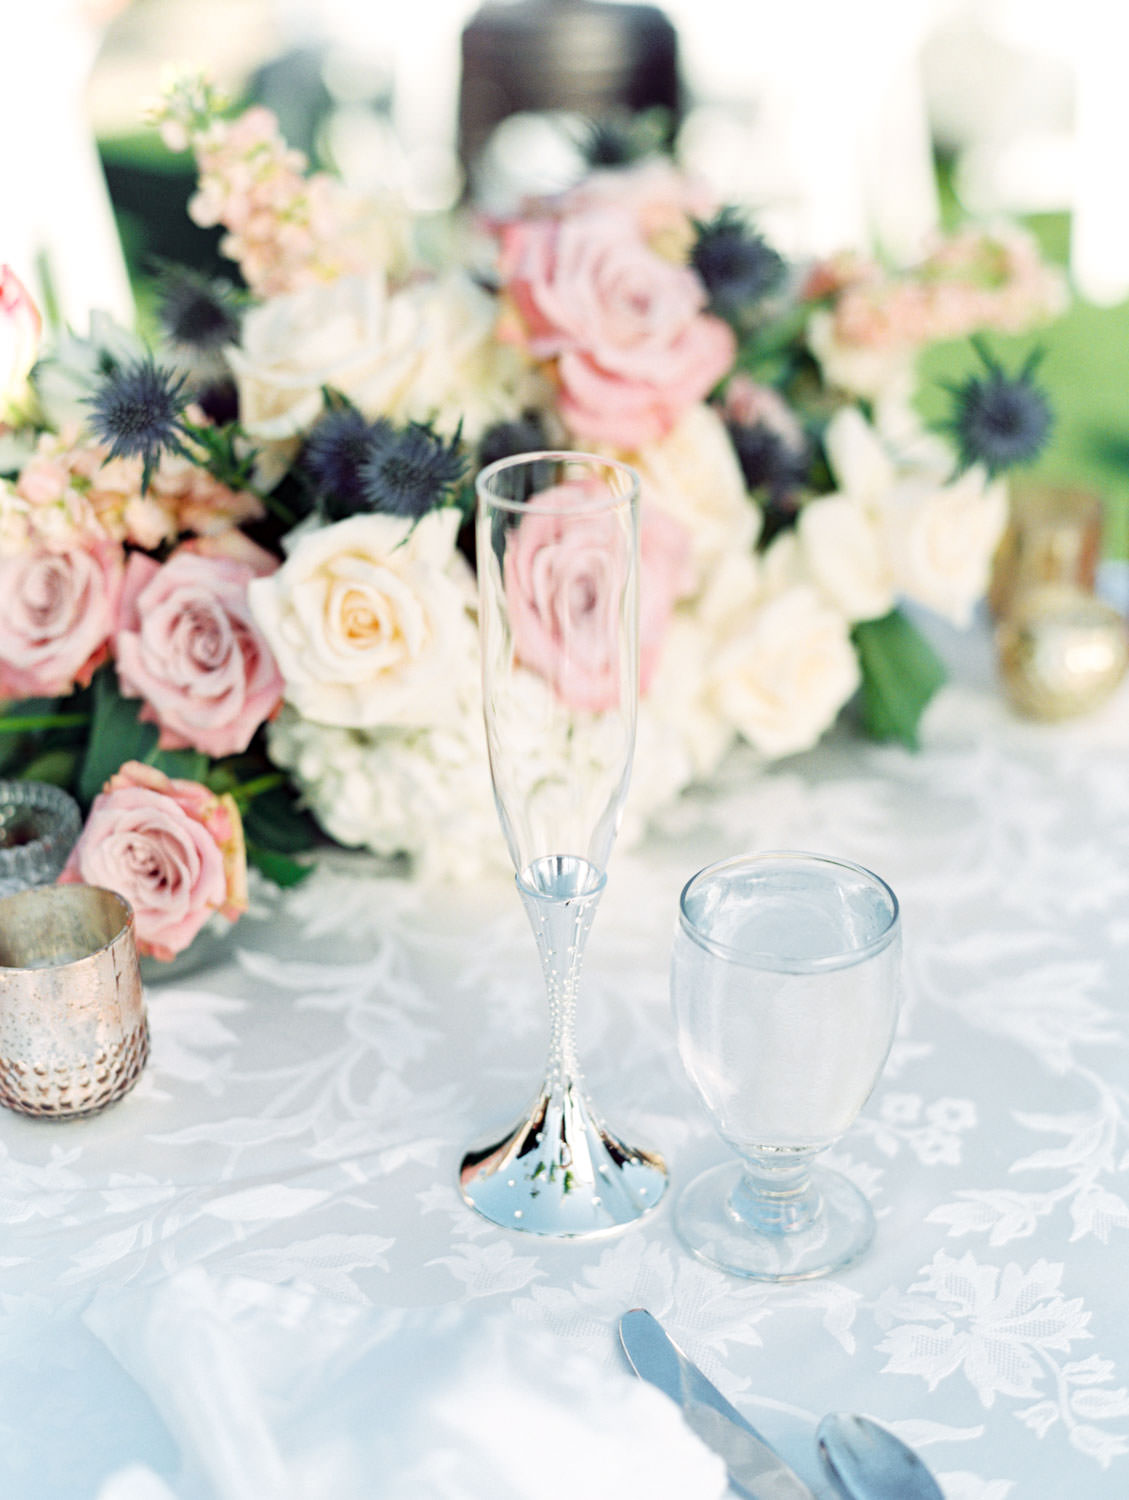 Sweetheart table's champagne glass and centerpiece with pink and ivory roses and greenery surrounded by rose gold votives captured on film. Wedding at Humphreys Half Moon Inn by Cavin Elizabeth Photography